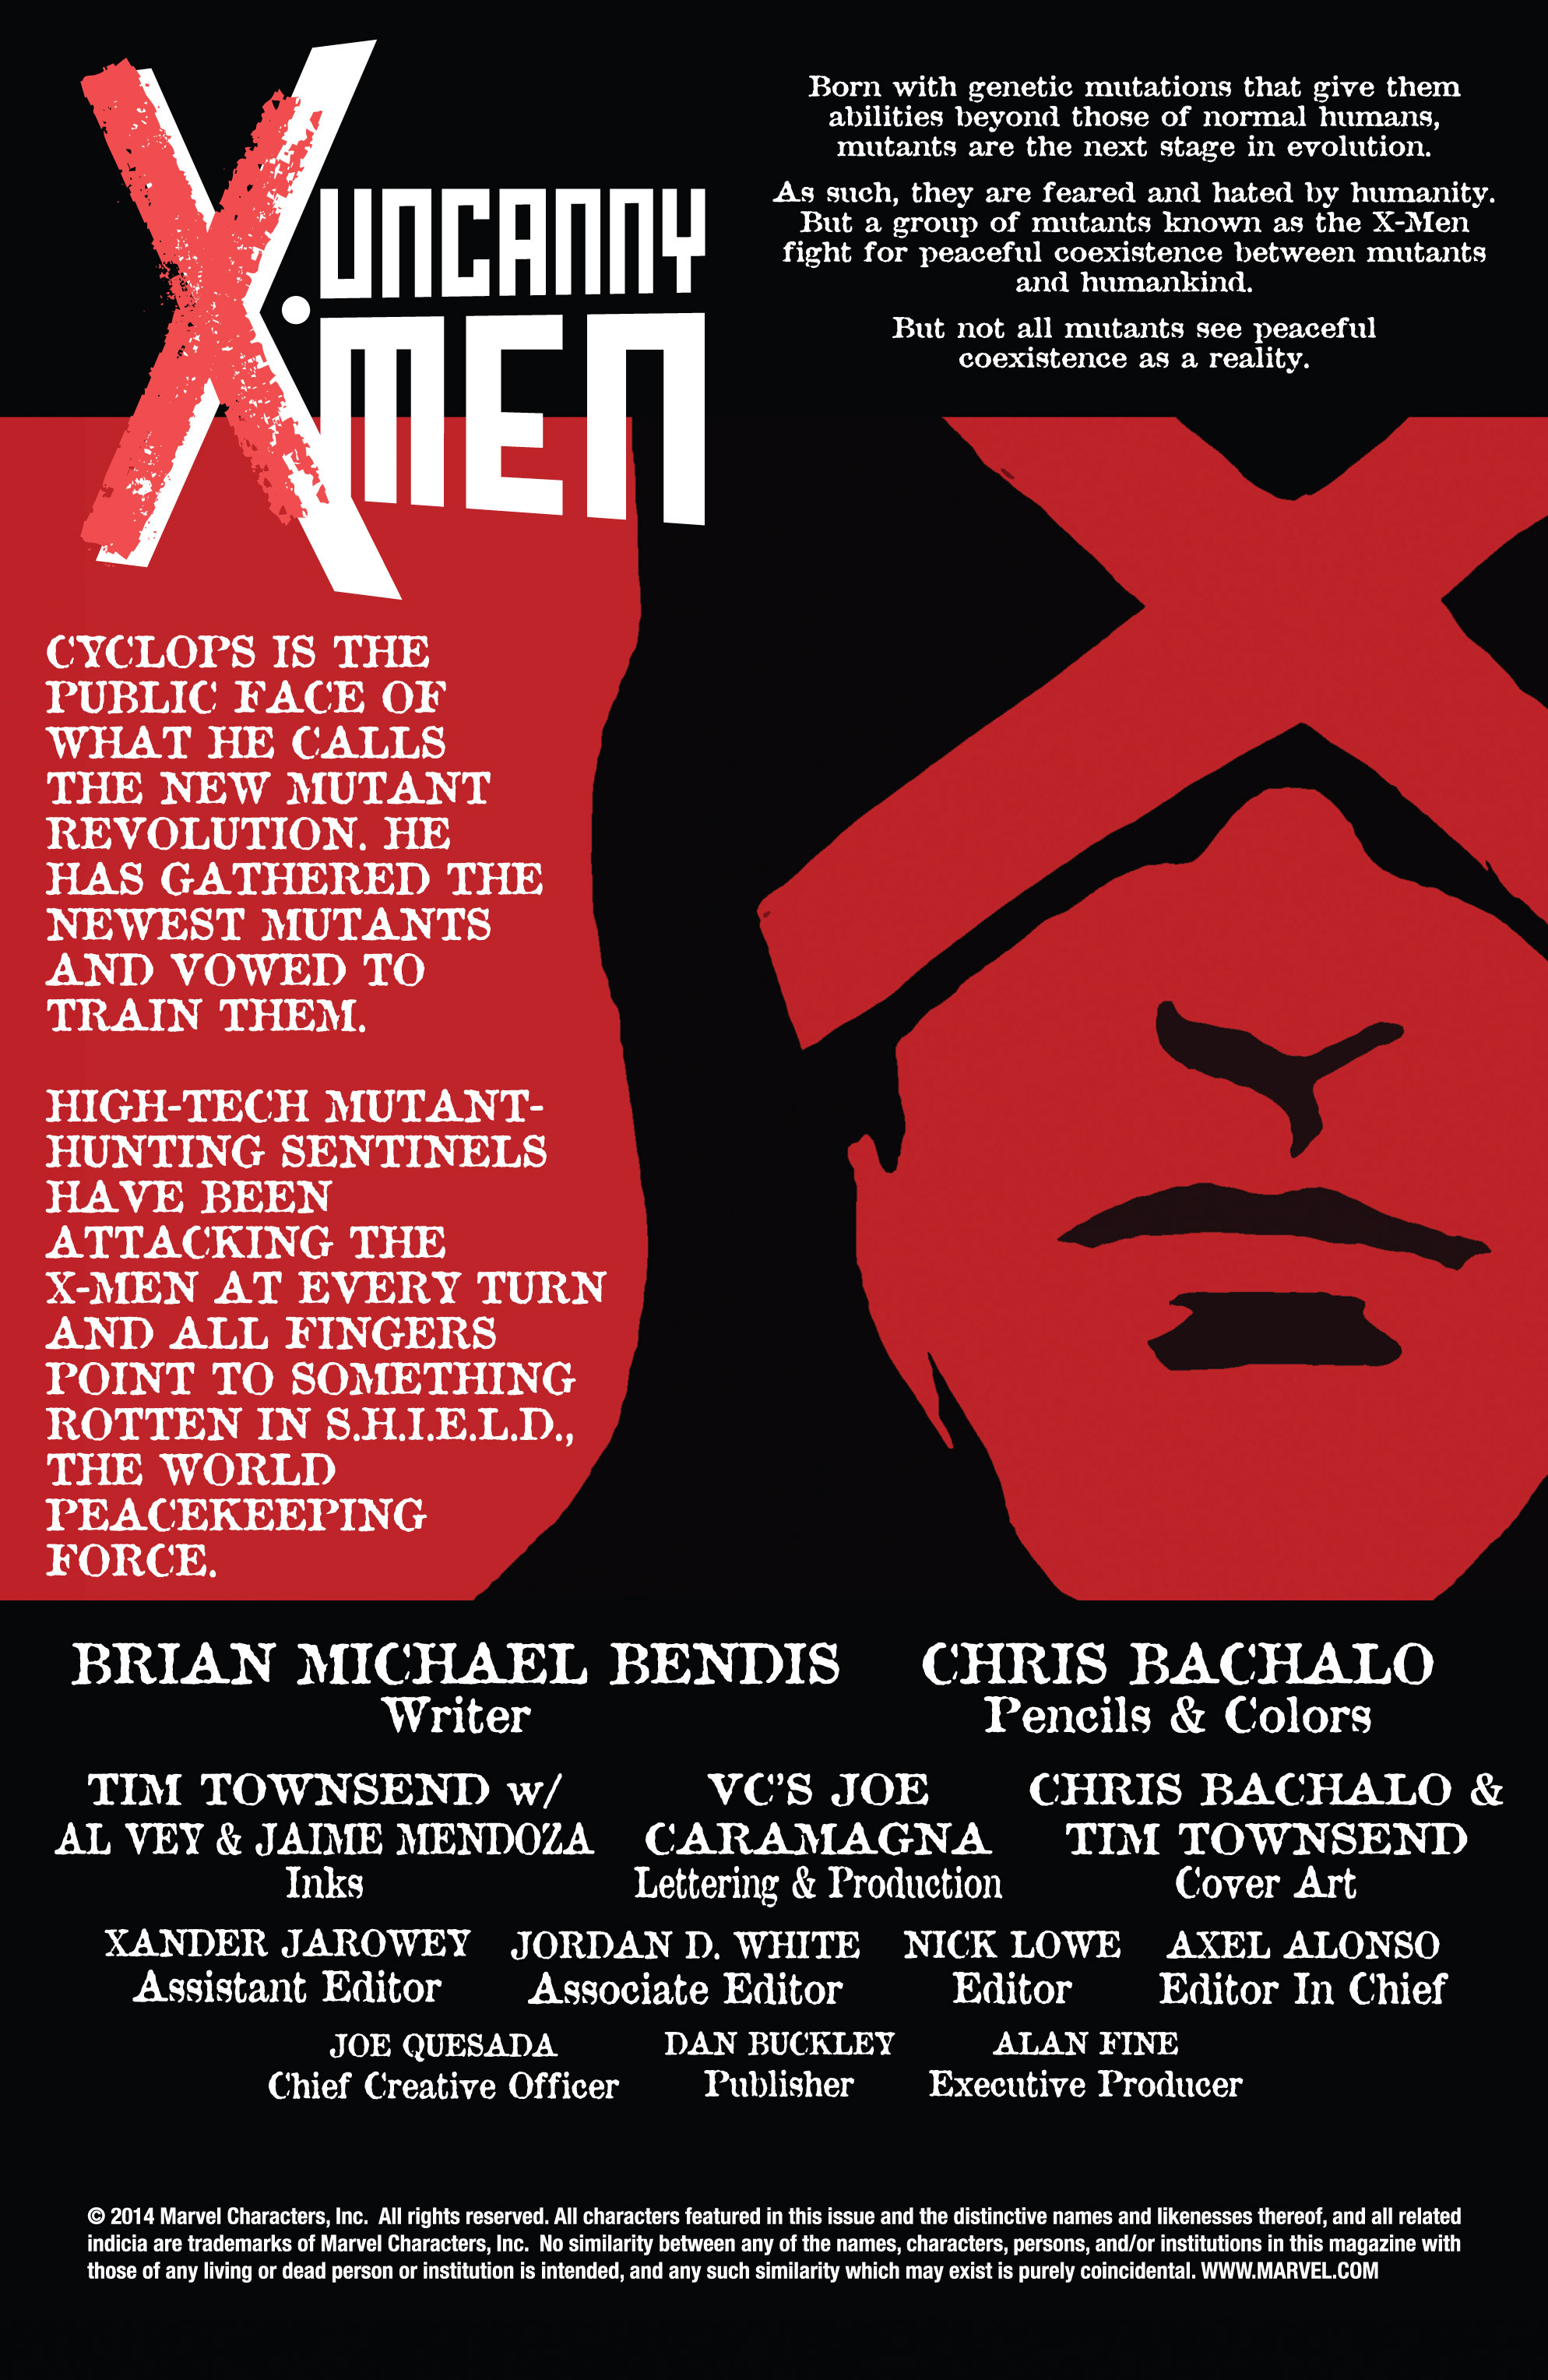 Read online Uncanny X-Men (2013) comic -  Issue # _TPB 3 - The Good, The Bad, The Inhuman - 66